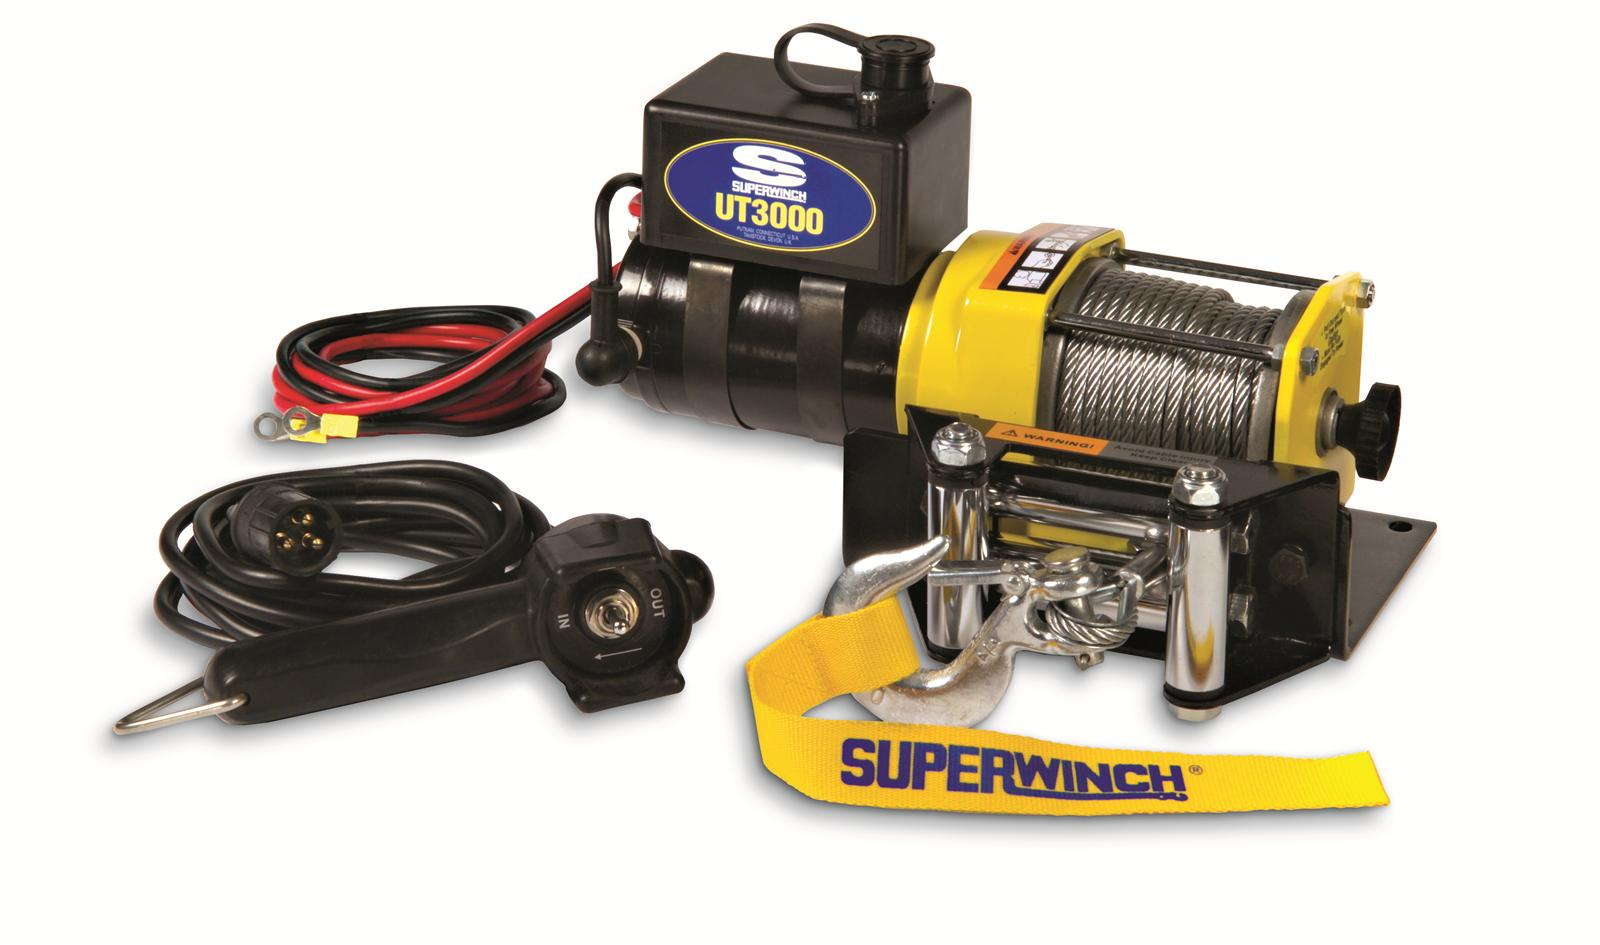 Superwinch 1331200 UT3000